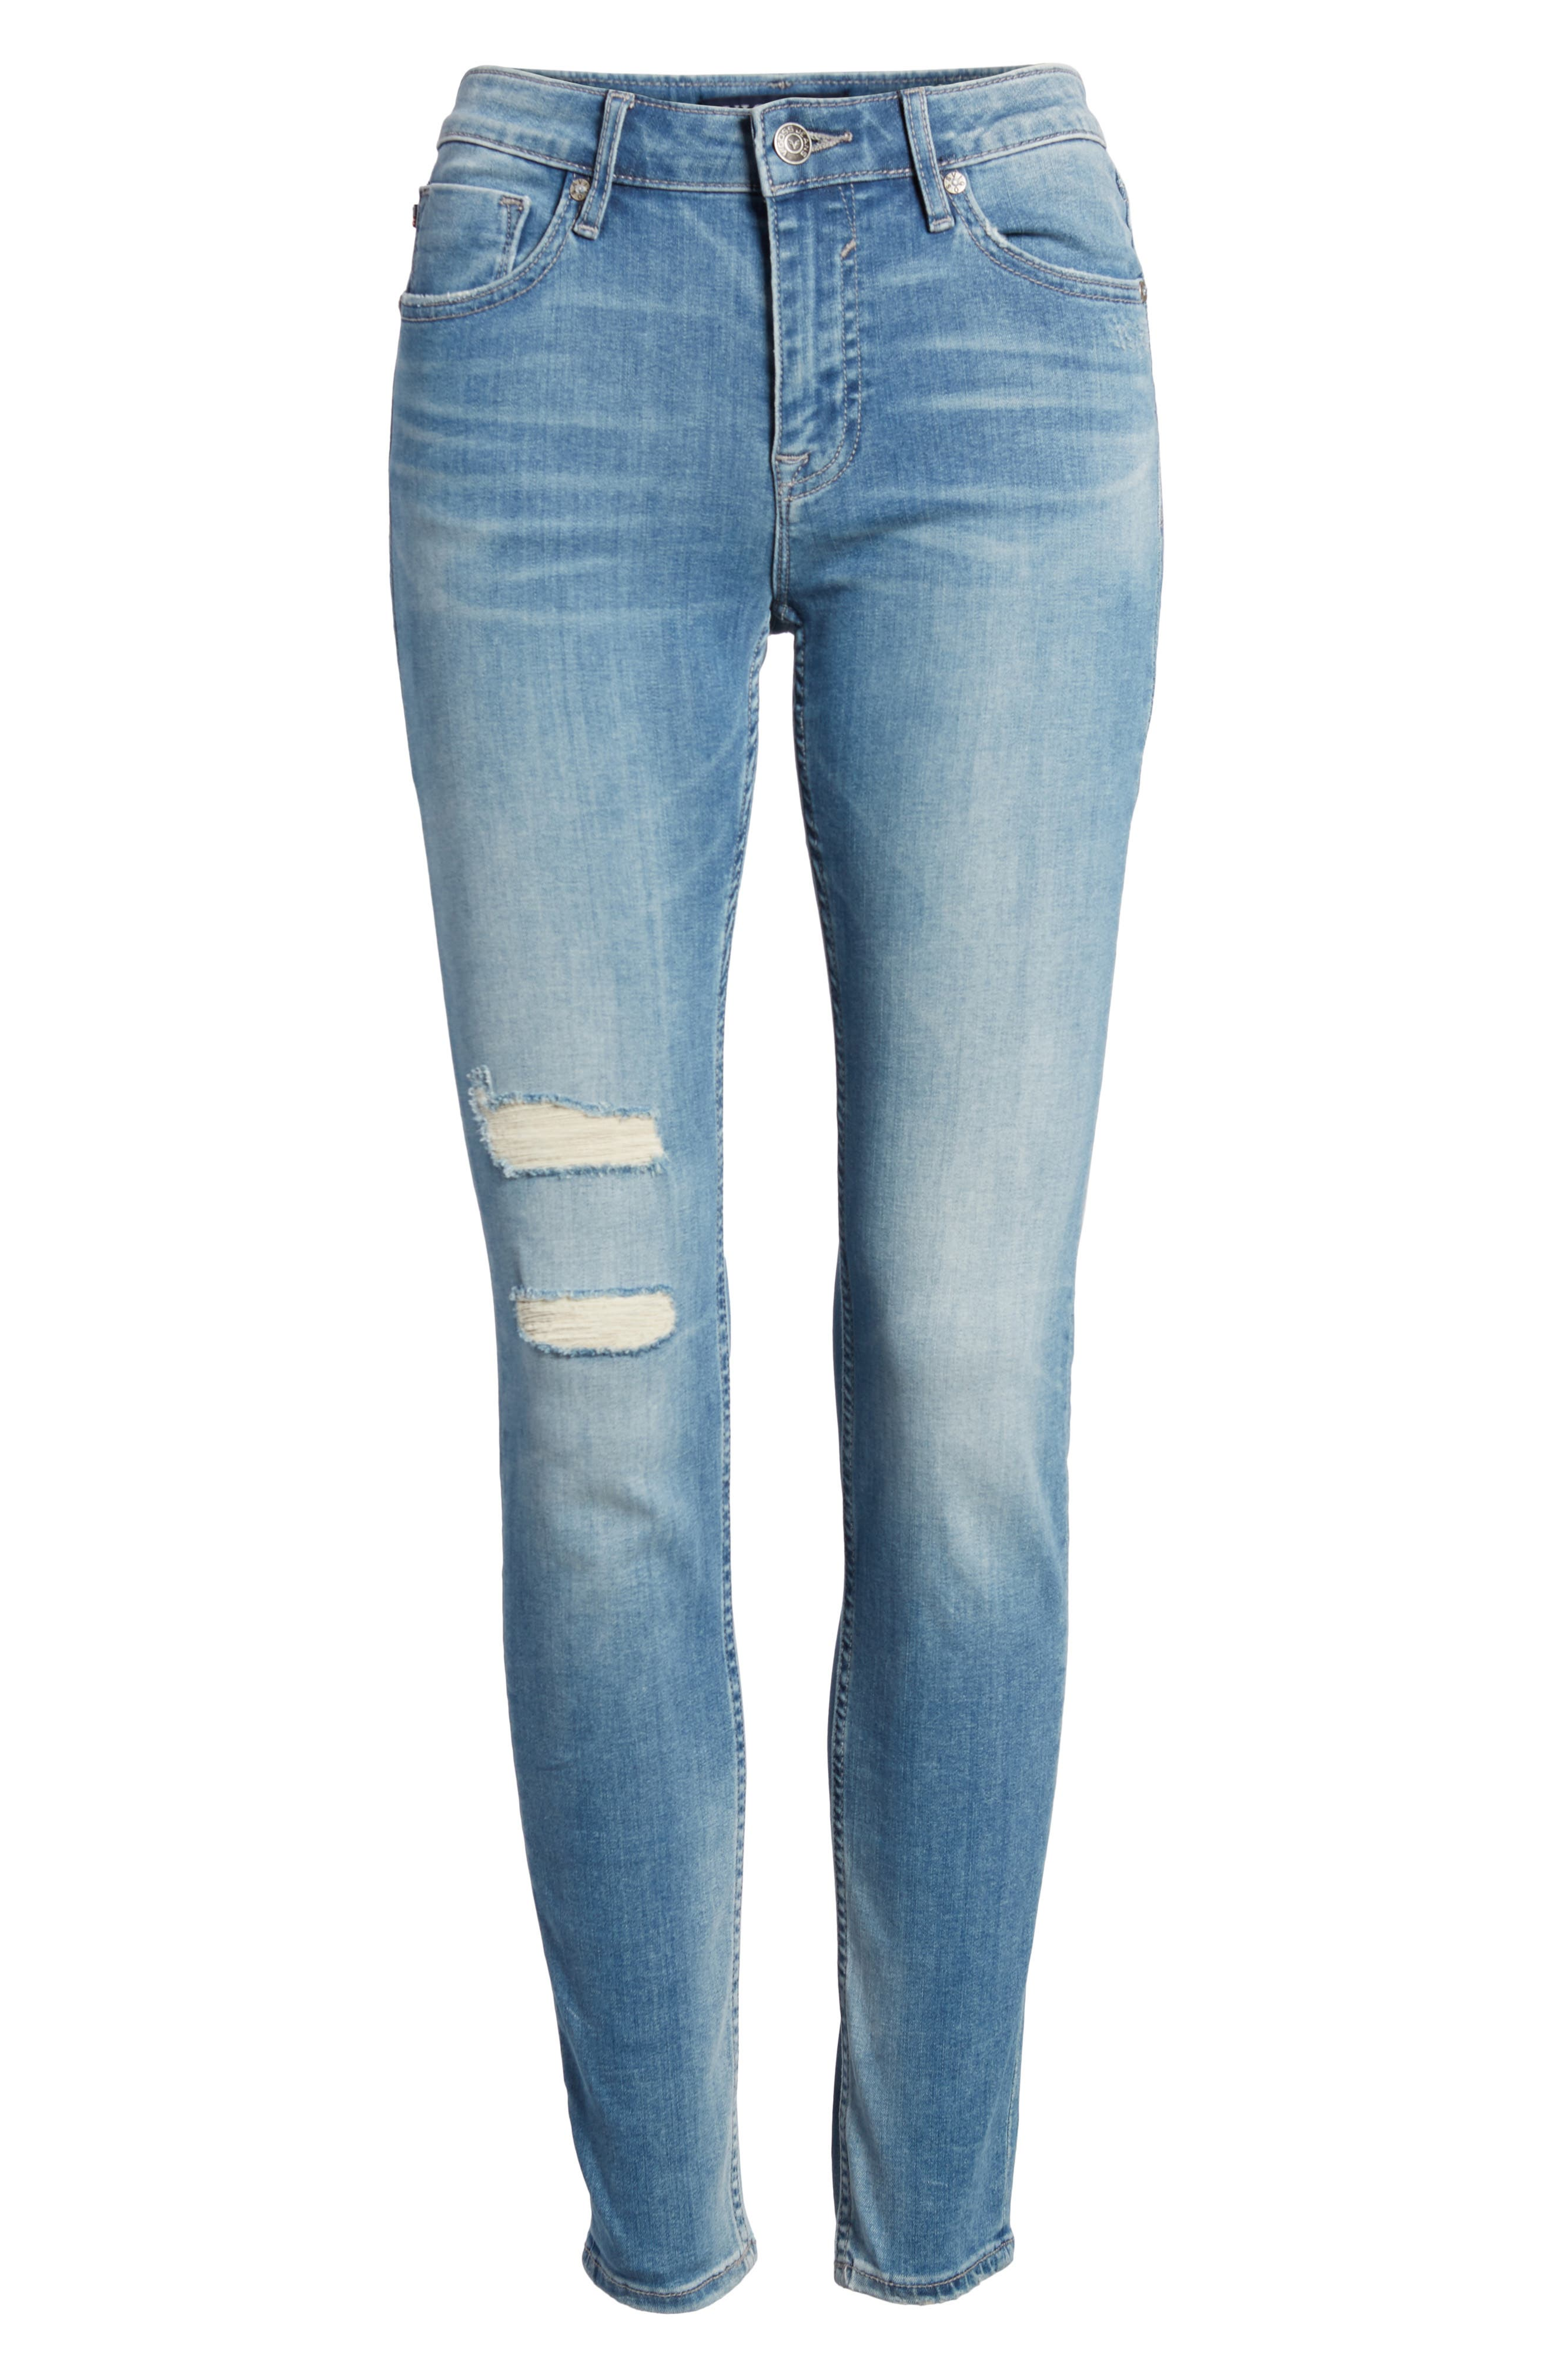 Marley Ripped Skinny Jeans,                             Alternate thumbnail 5, color,                             Light Wash